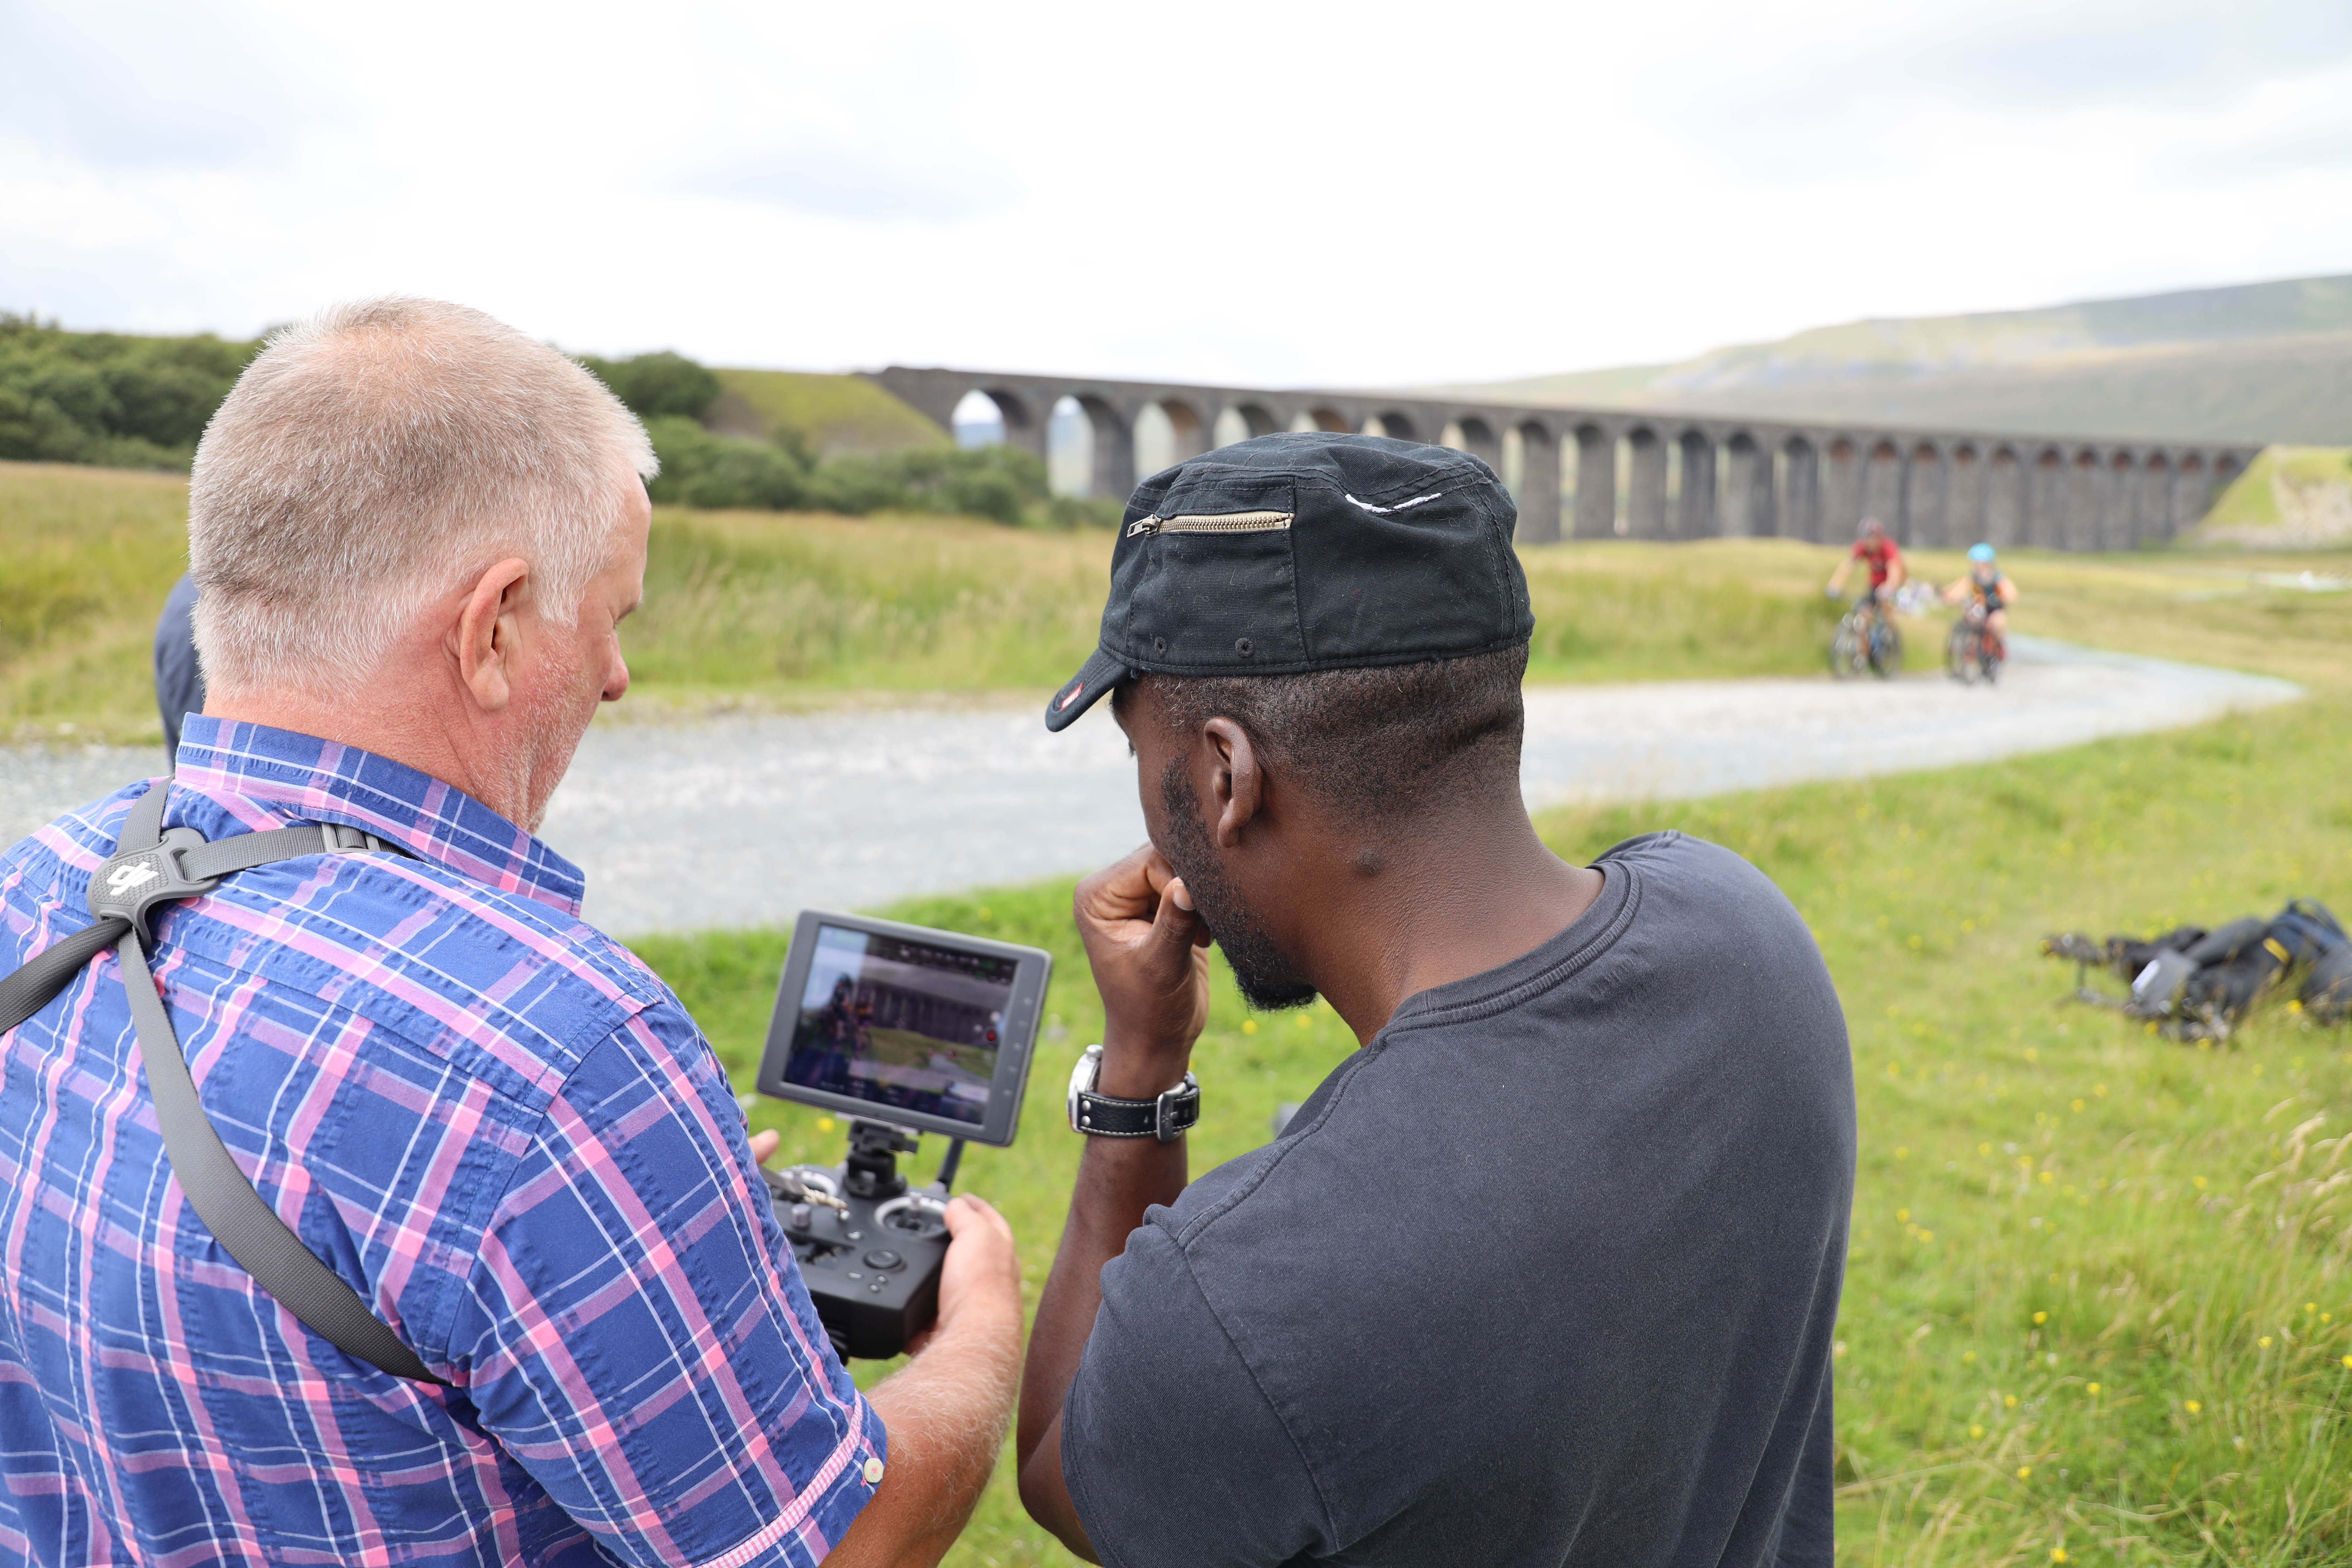 Drone operator and director study shot of cyclists at Ribblehead viaduct for Cycle the Dales promotional video with Pocket Projects